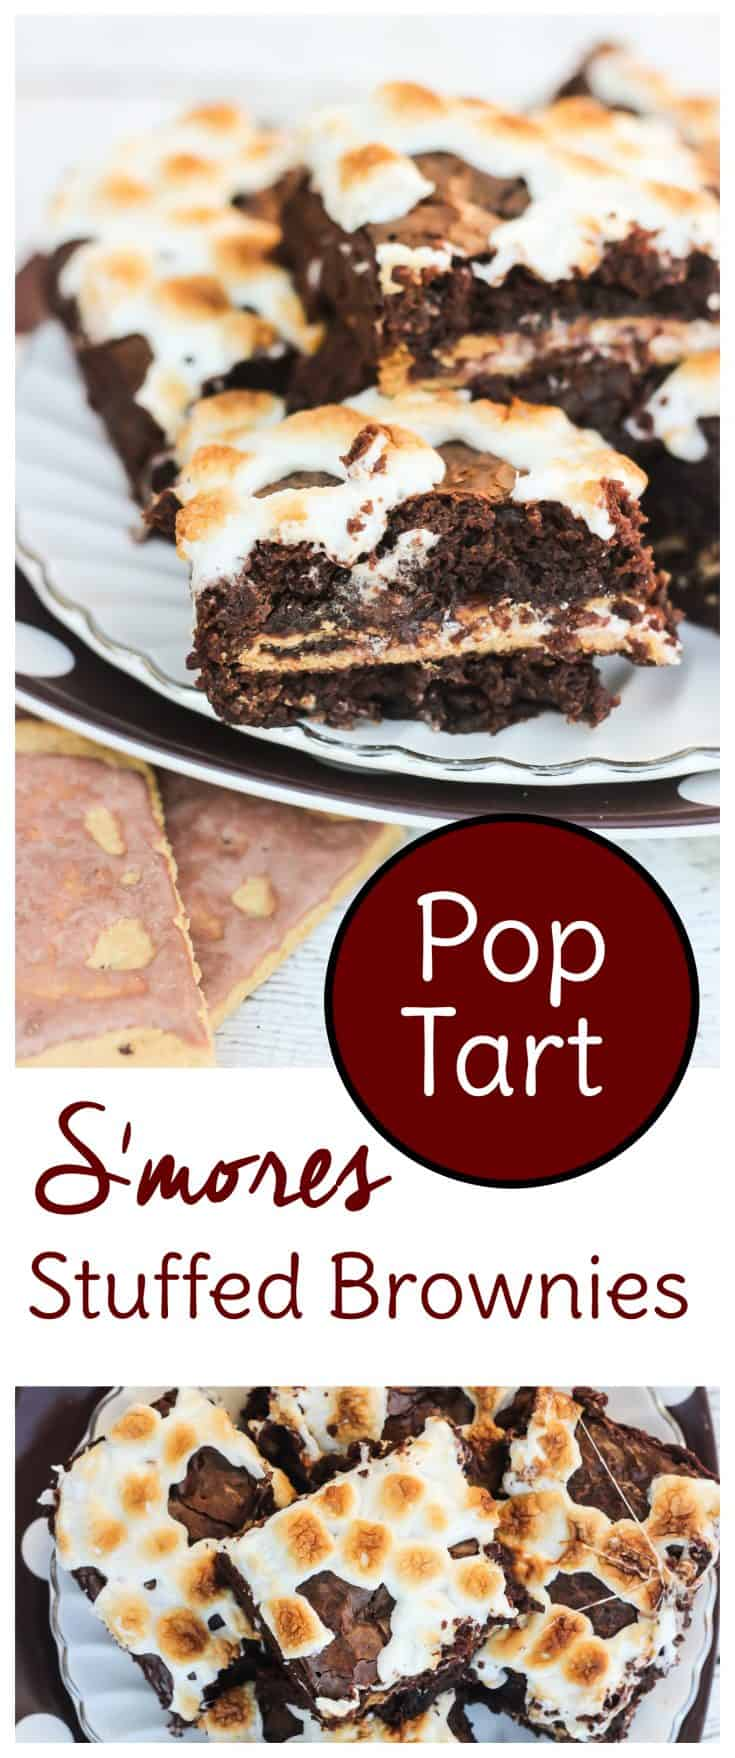 These S'mores Pop Tart Stuffed brownies are a rich, decadent dessert recipe that's also incredibly easy to make. #chocolate #smores #brownies